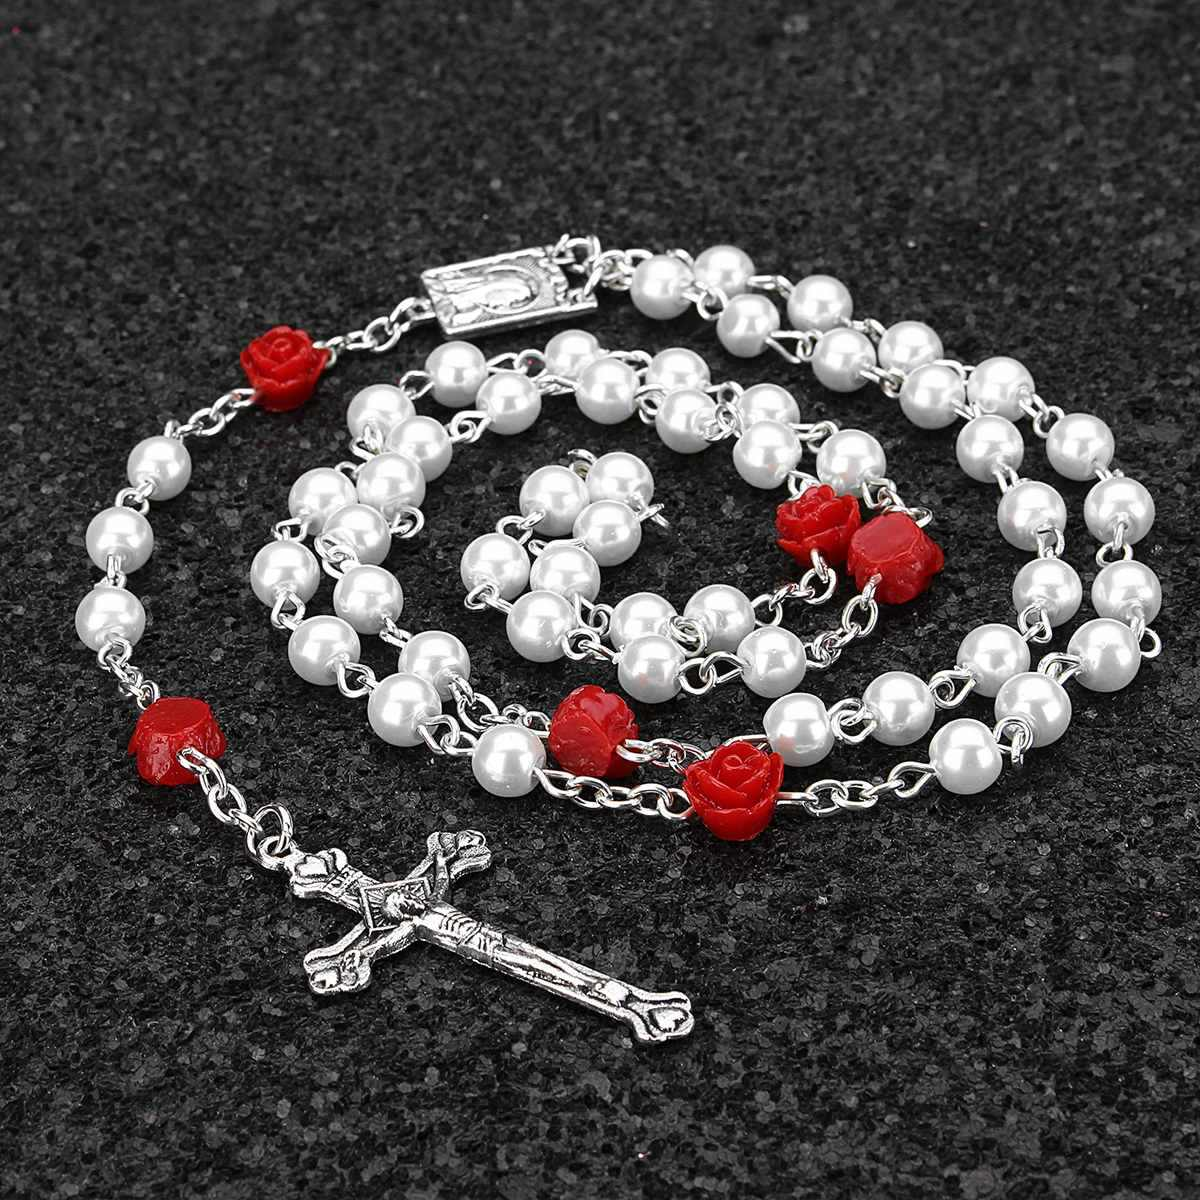 5 Colors Necklace Woman Man Holy Jesus Imitation Pearl Bead Necklace Silver Drop Rosaries Cross Virgin Mary Center